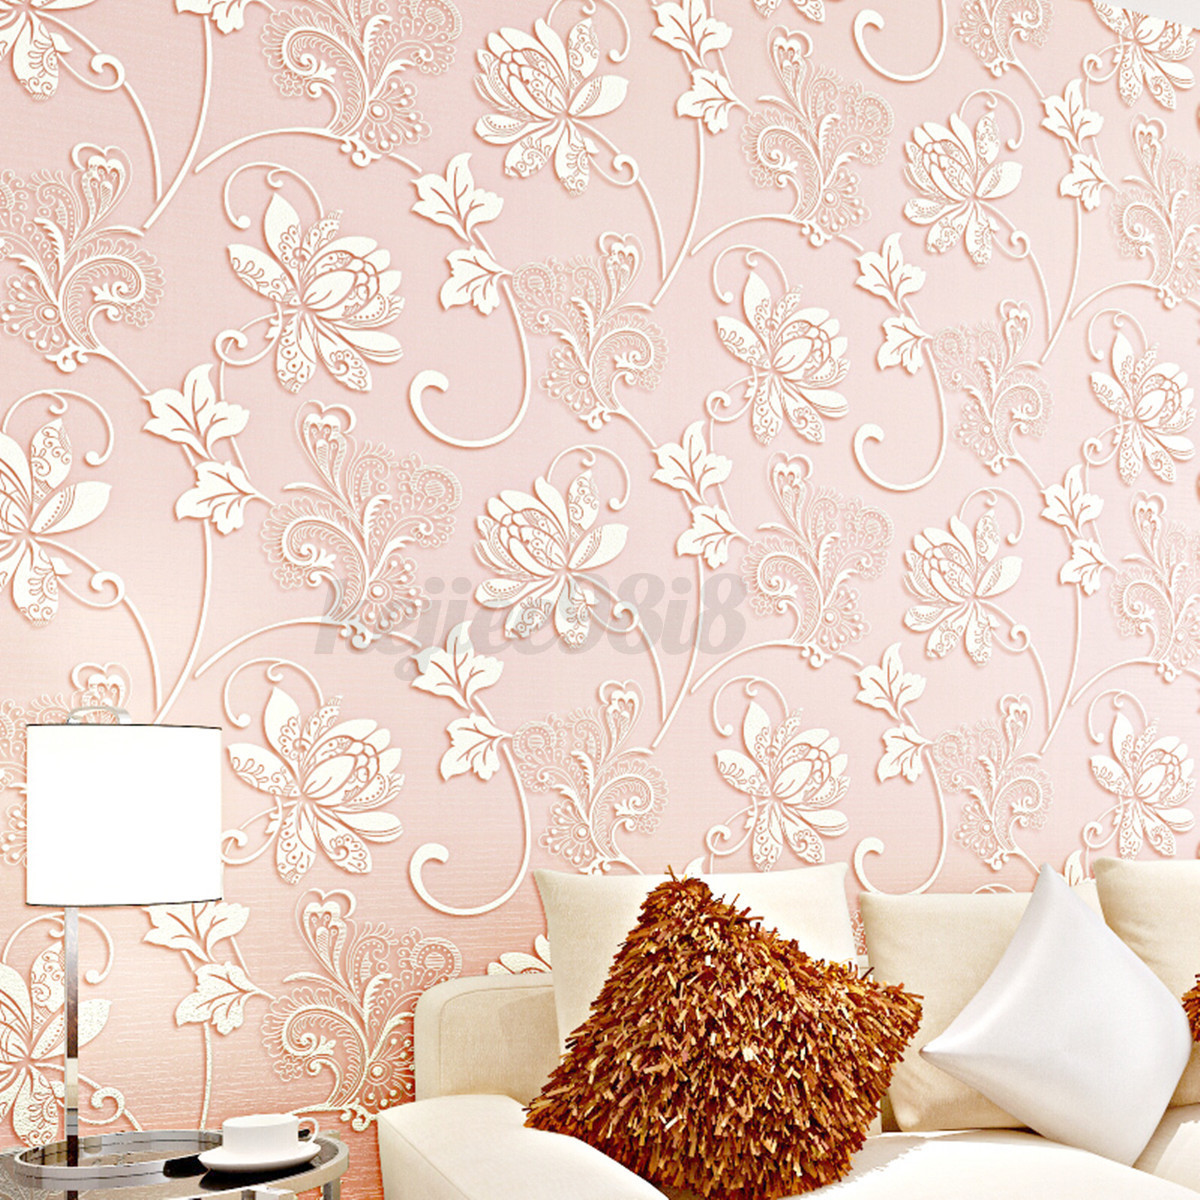 Luxury silver 3d victorian embossed non woven wallpaper for 3d embossed wallpaper